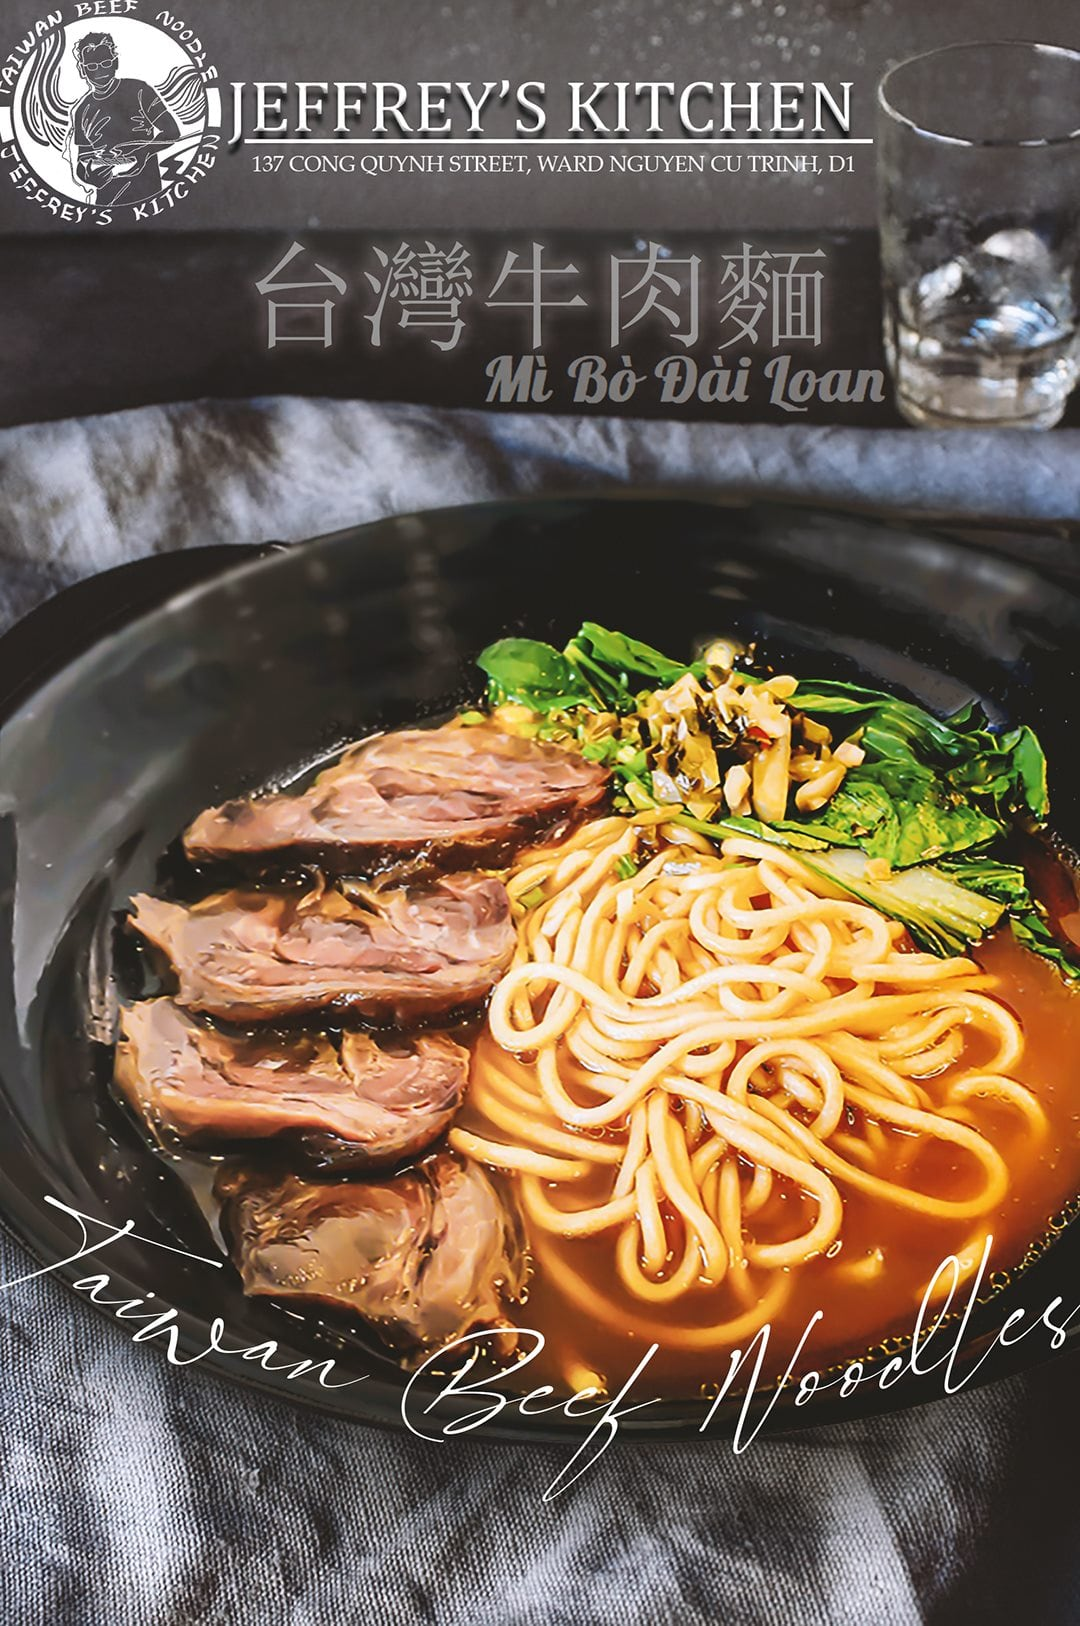 Taiwanese beef noodles at Jeffrey's Kitchen